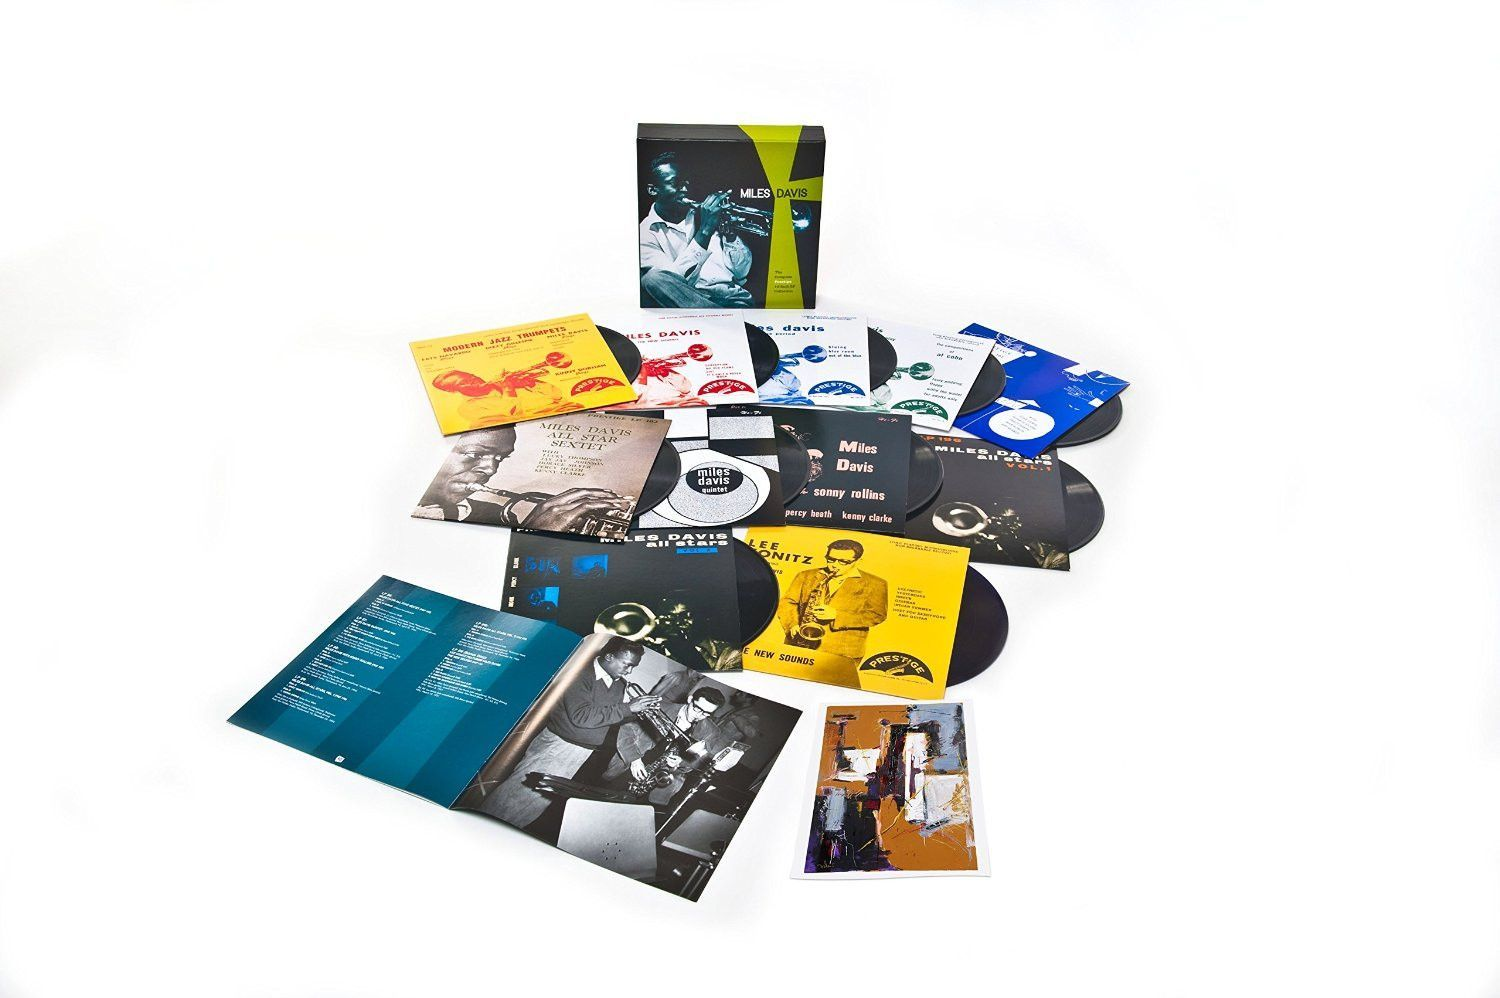 """Miles Davis - The Complete Prestige 10-Inch LP Collection on Limited Edition 11 x 10"""" Vinyl Box Set May 13 2016"""